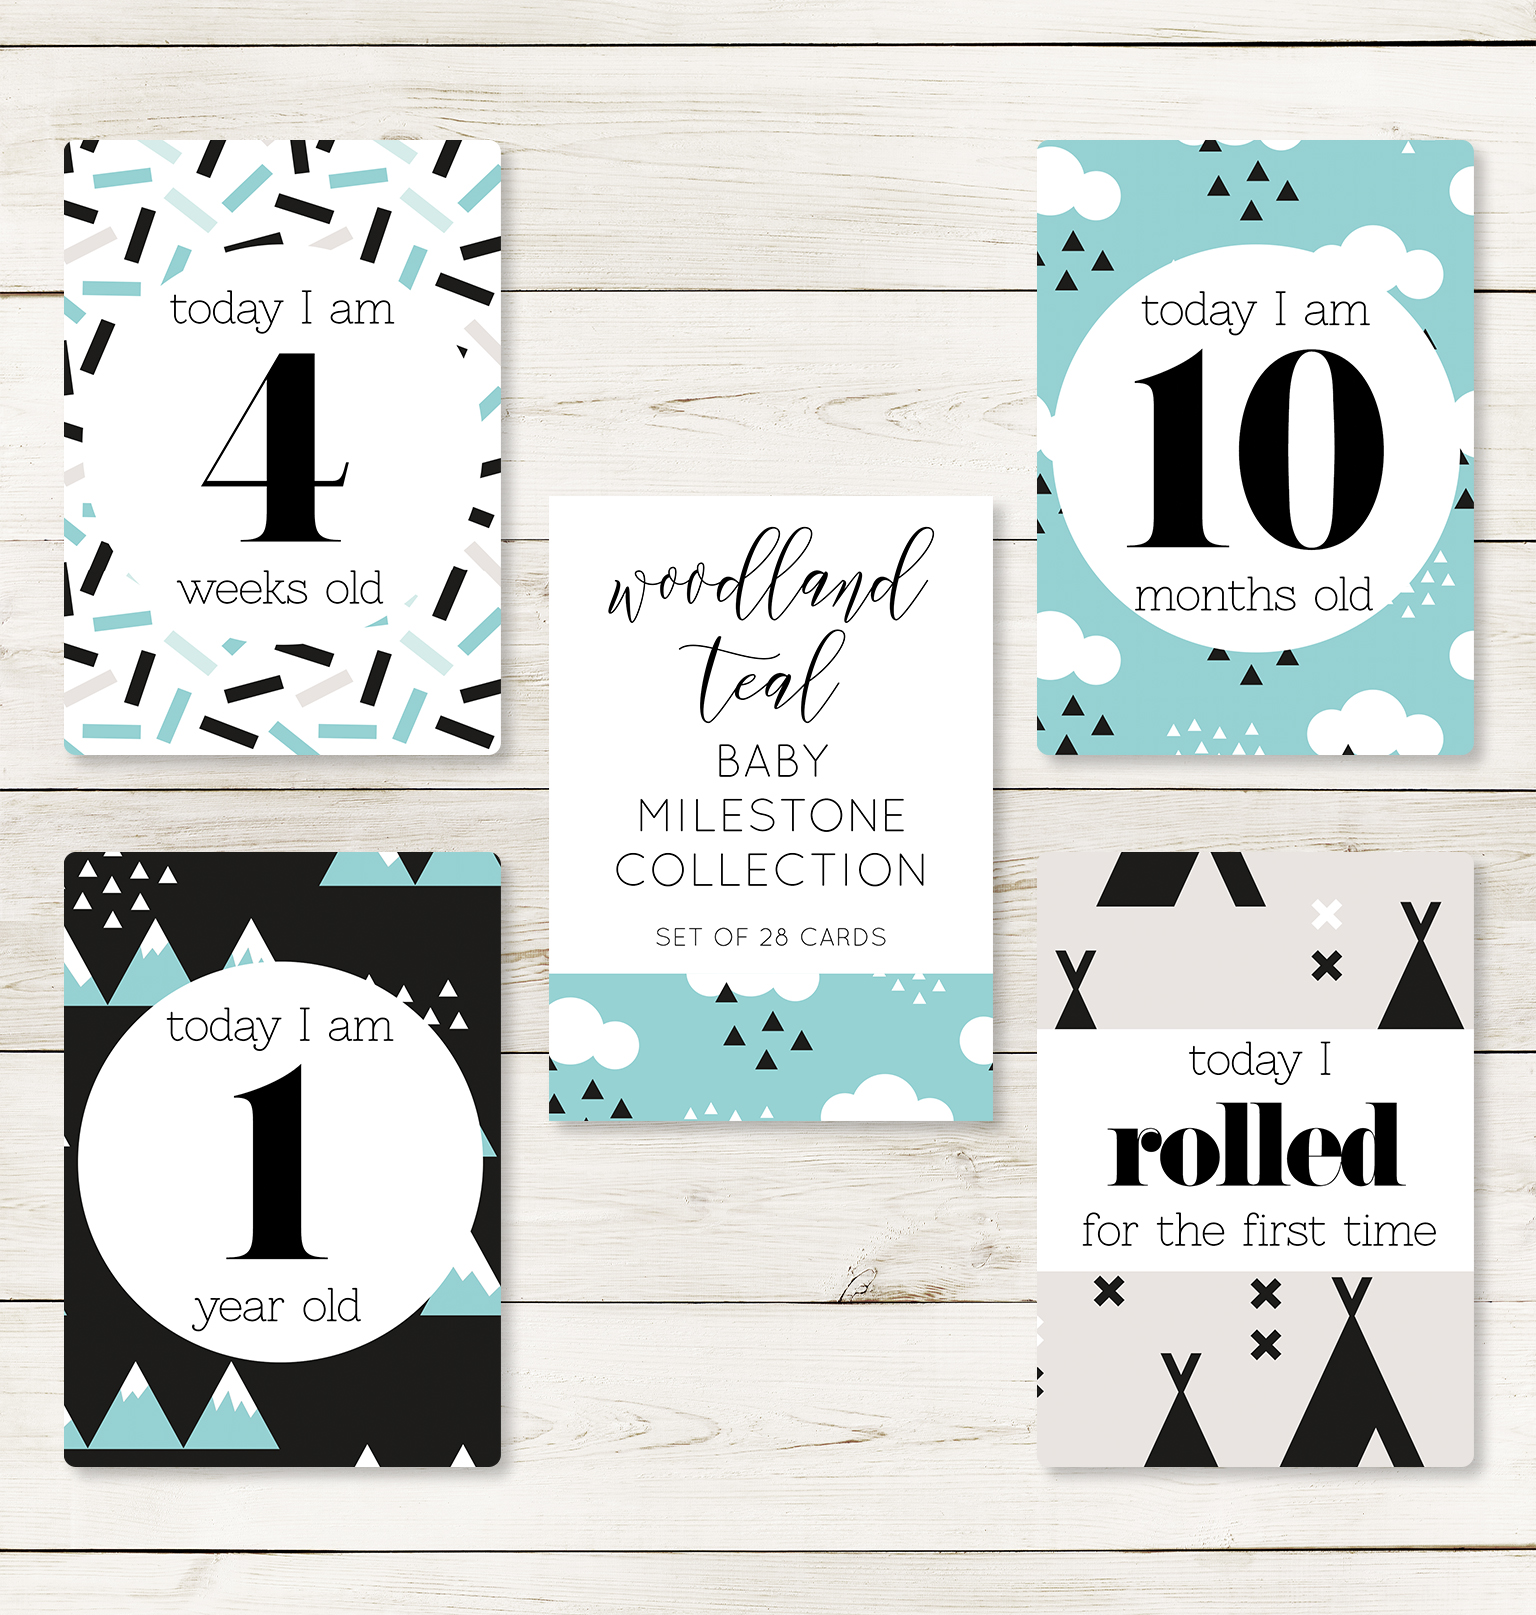 Woodland Teal Milestone Cards